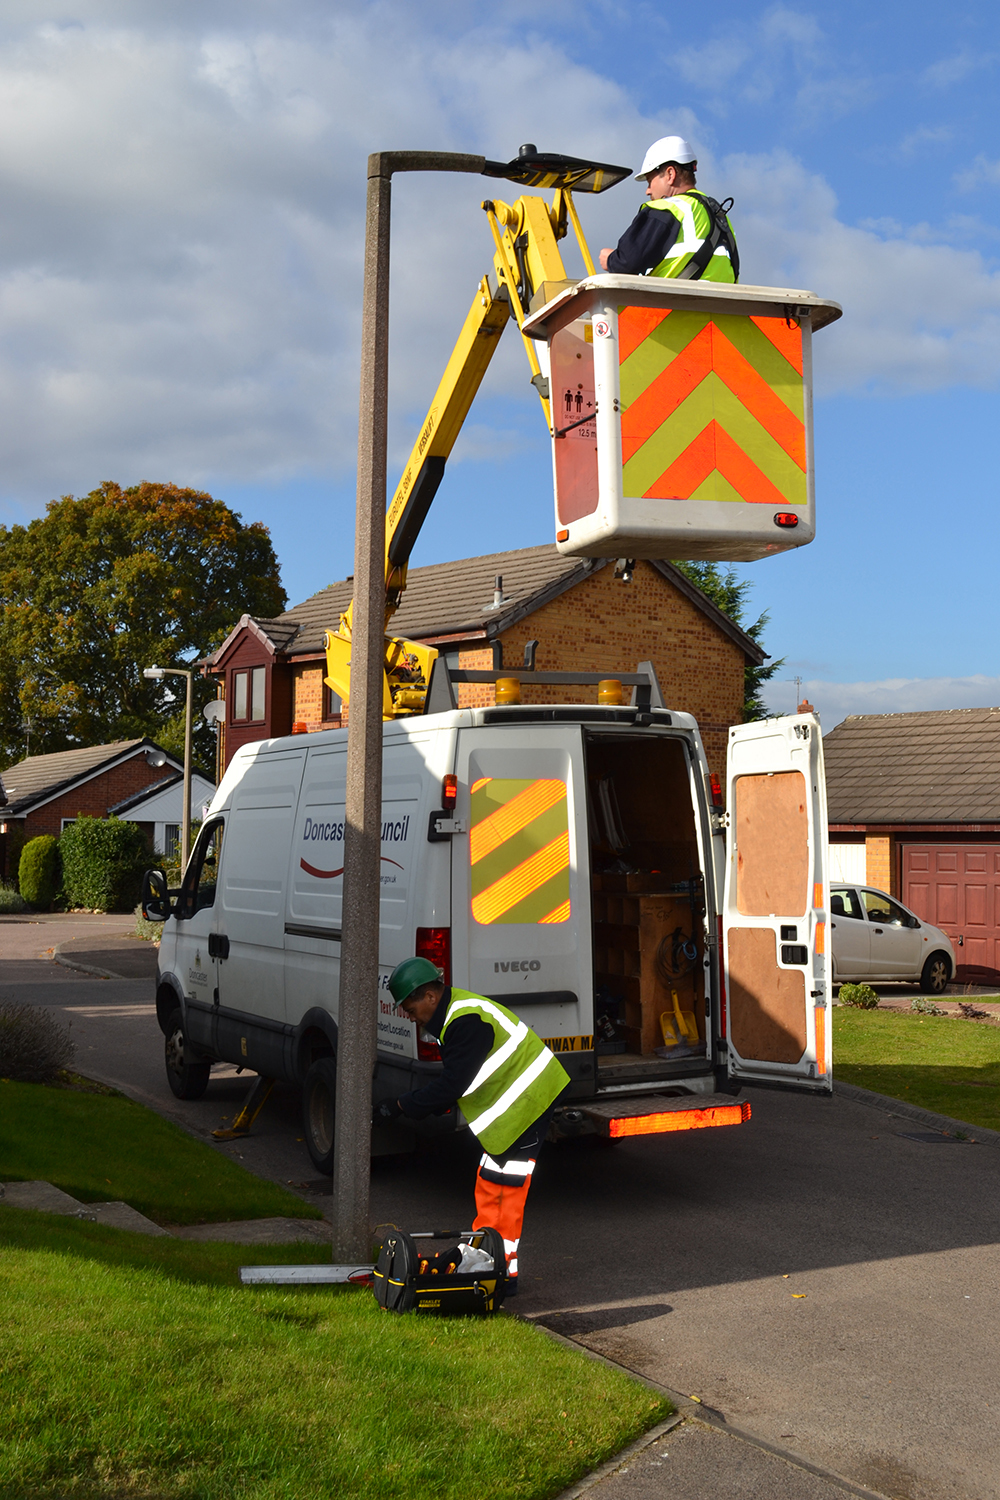 Smart city street lighting deployment in Doncaster